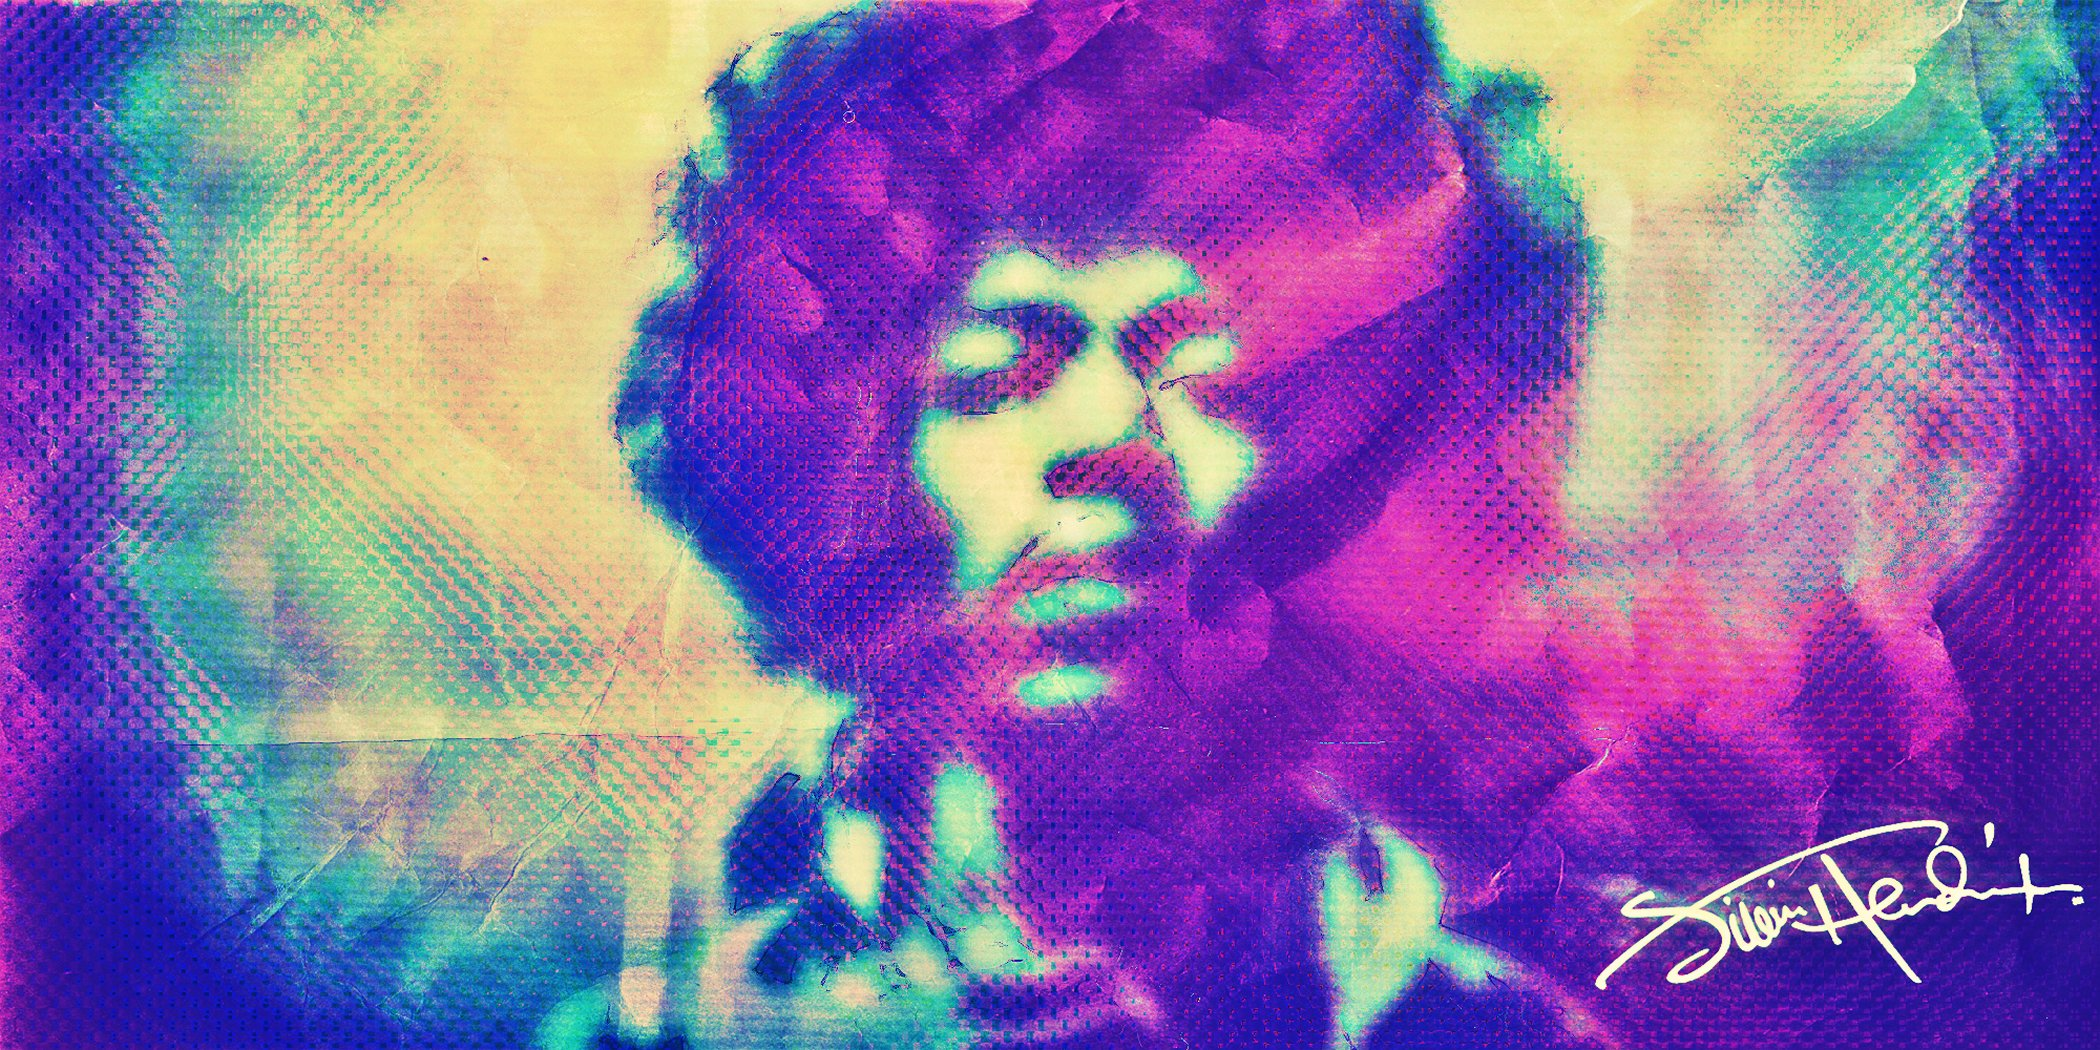 76 jimi hendrix hd wallpapers background images wallpaper abyss altavistaventures Images